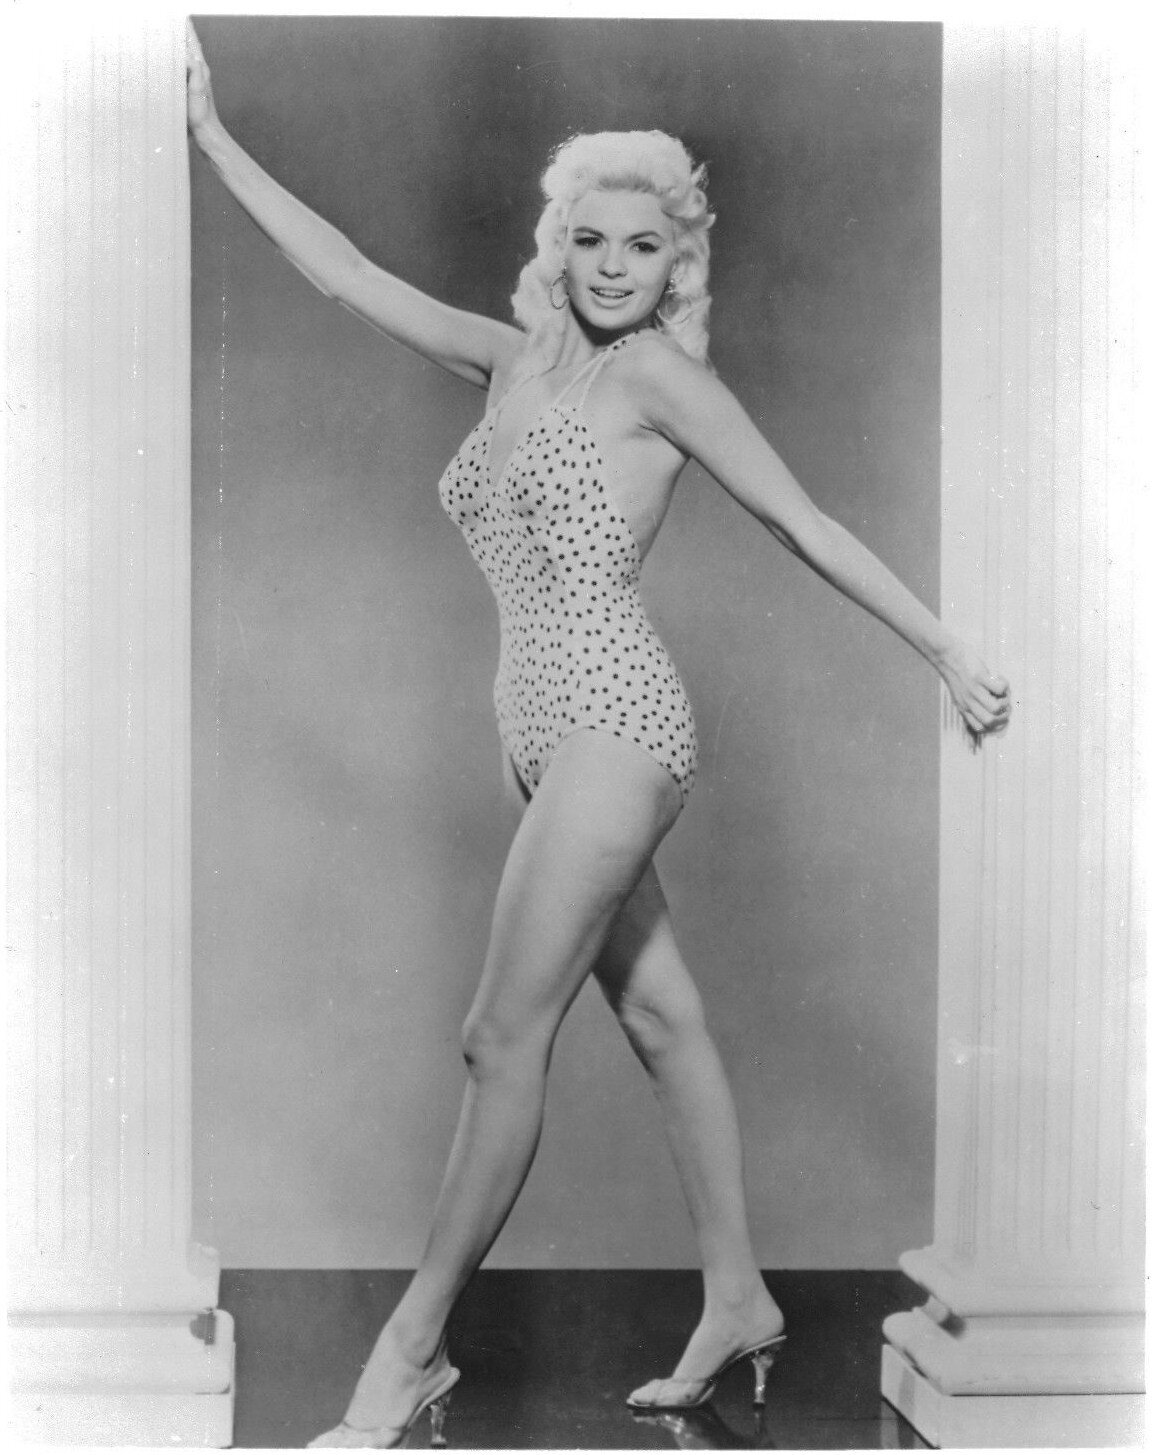 jayne_swimsuit_poids-1956-the_girl_cant_help_it-pub-1-7